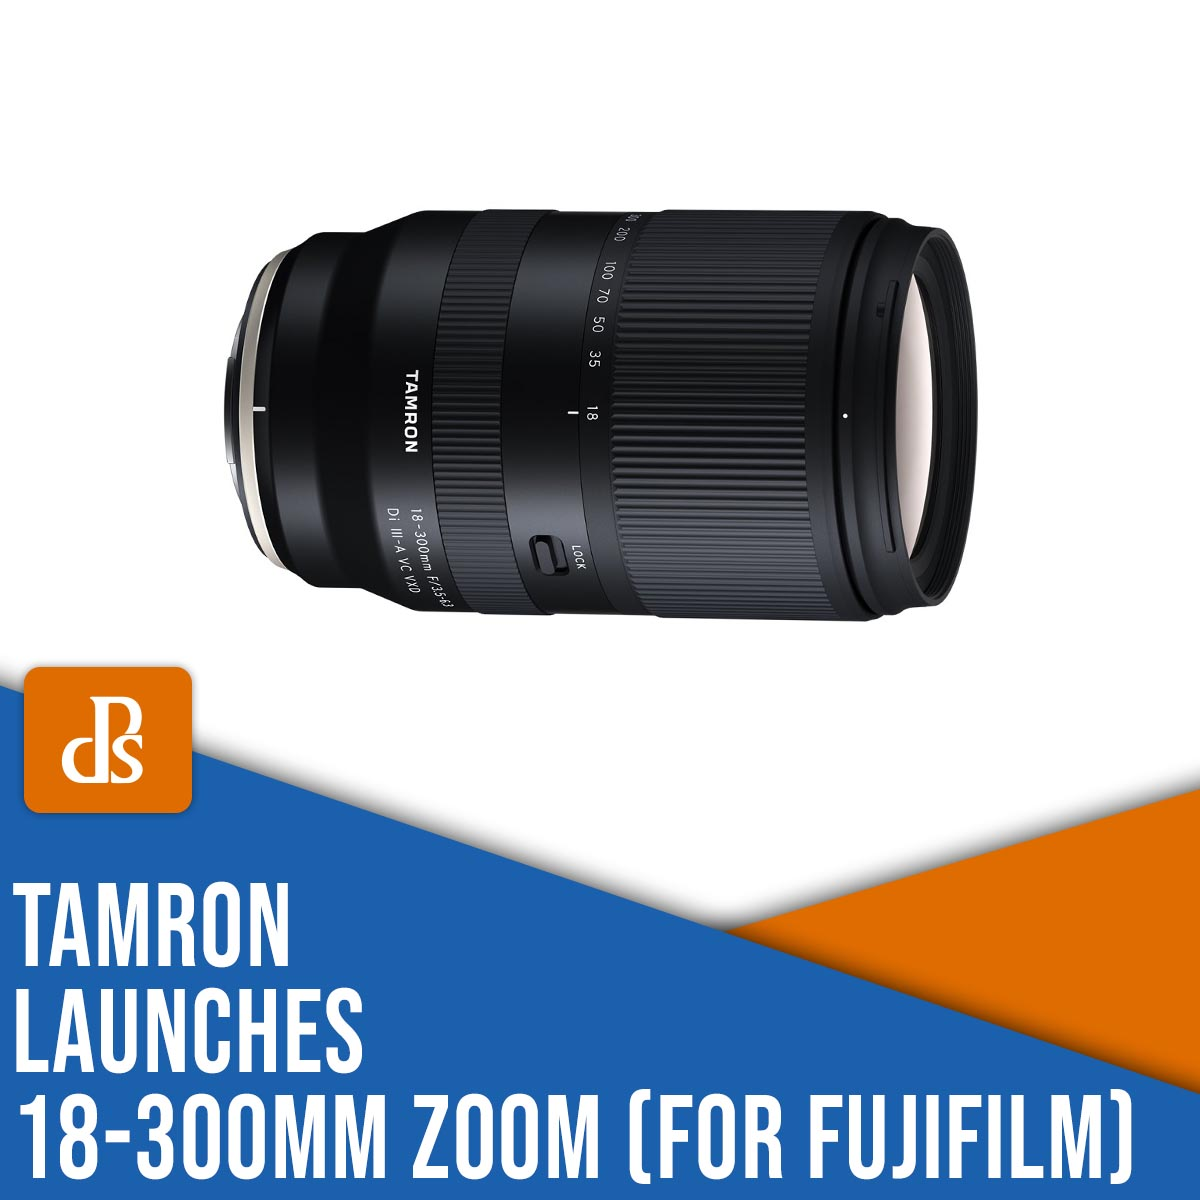 Tamron Launches Gorgeous 18-300mm Zoom for Fujifilm (and Sony)